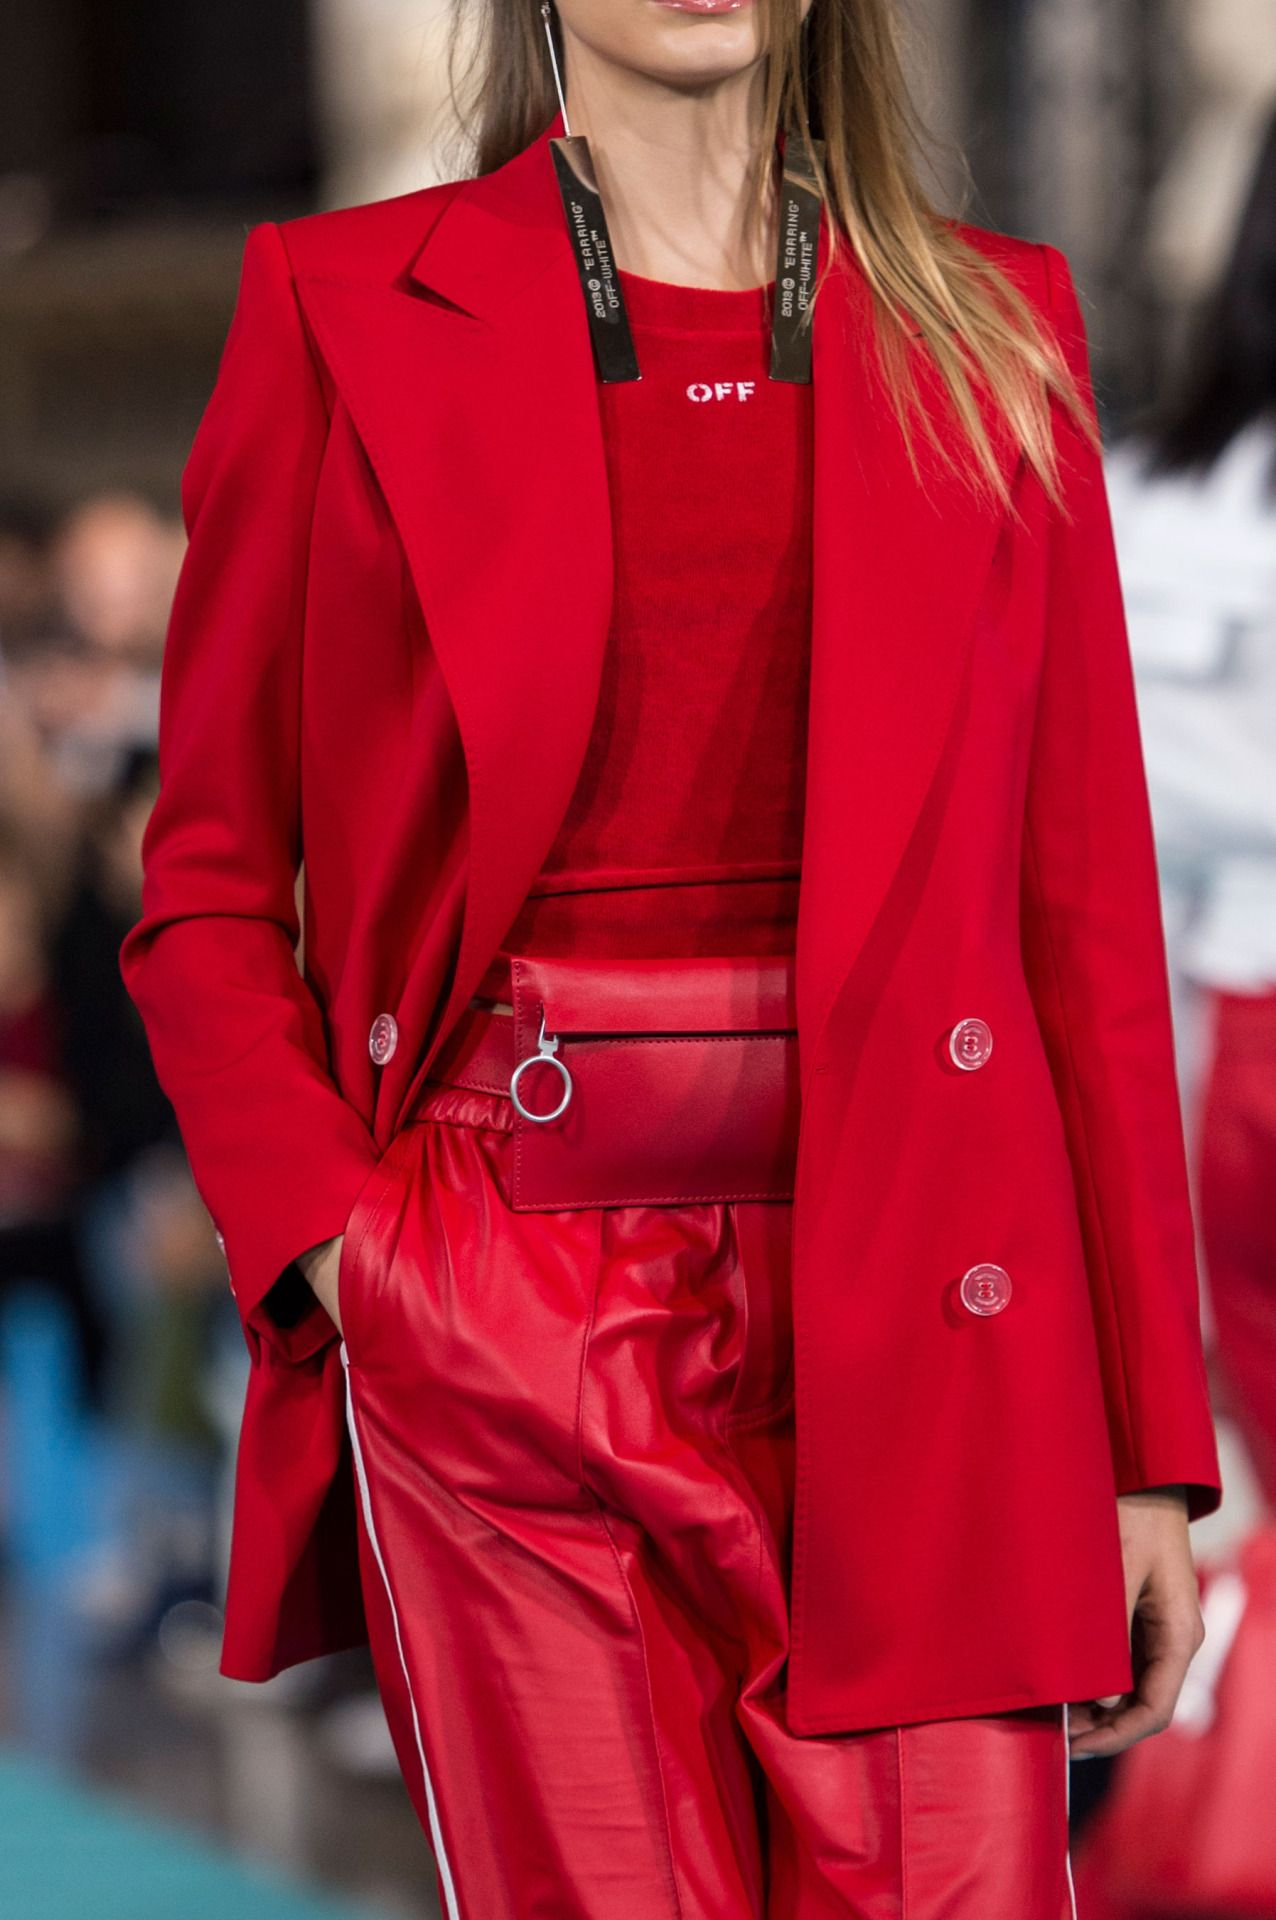 Pin by ☆ROMI ☆ on Style inspo in 2020 Fashion, Red